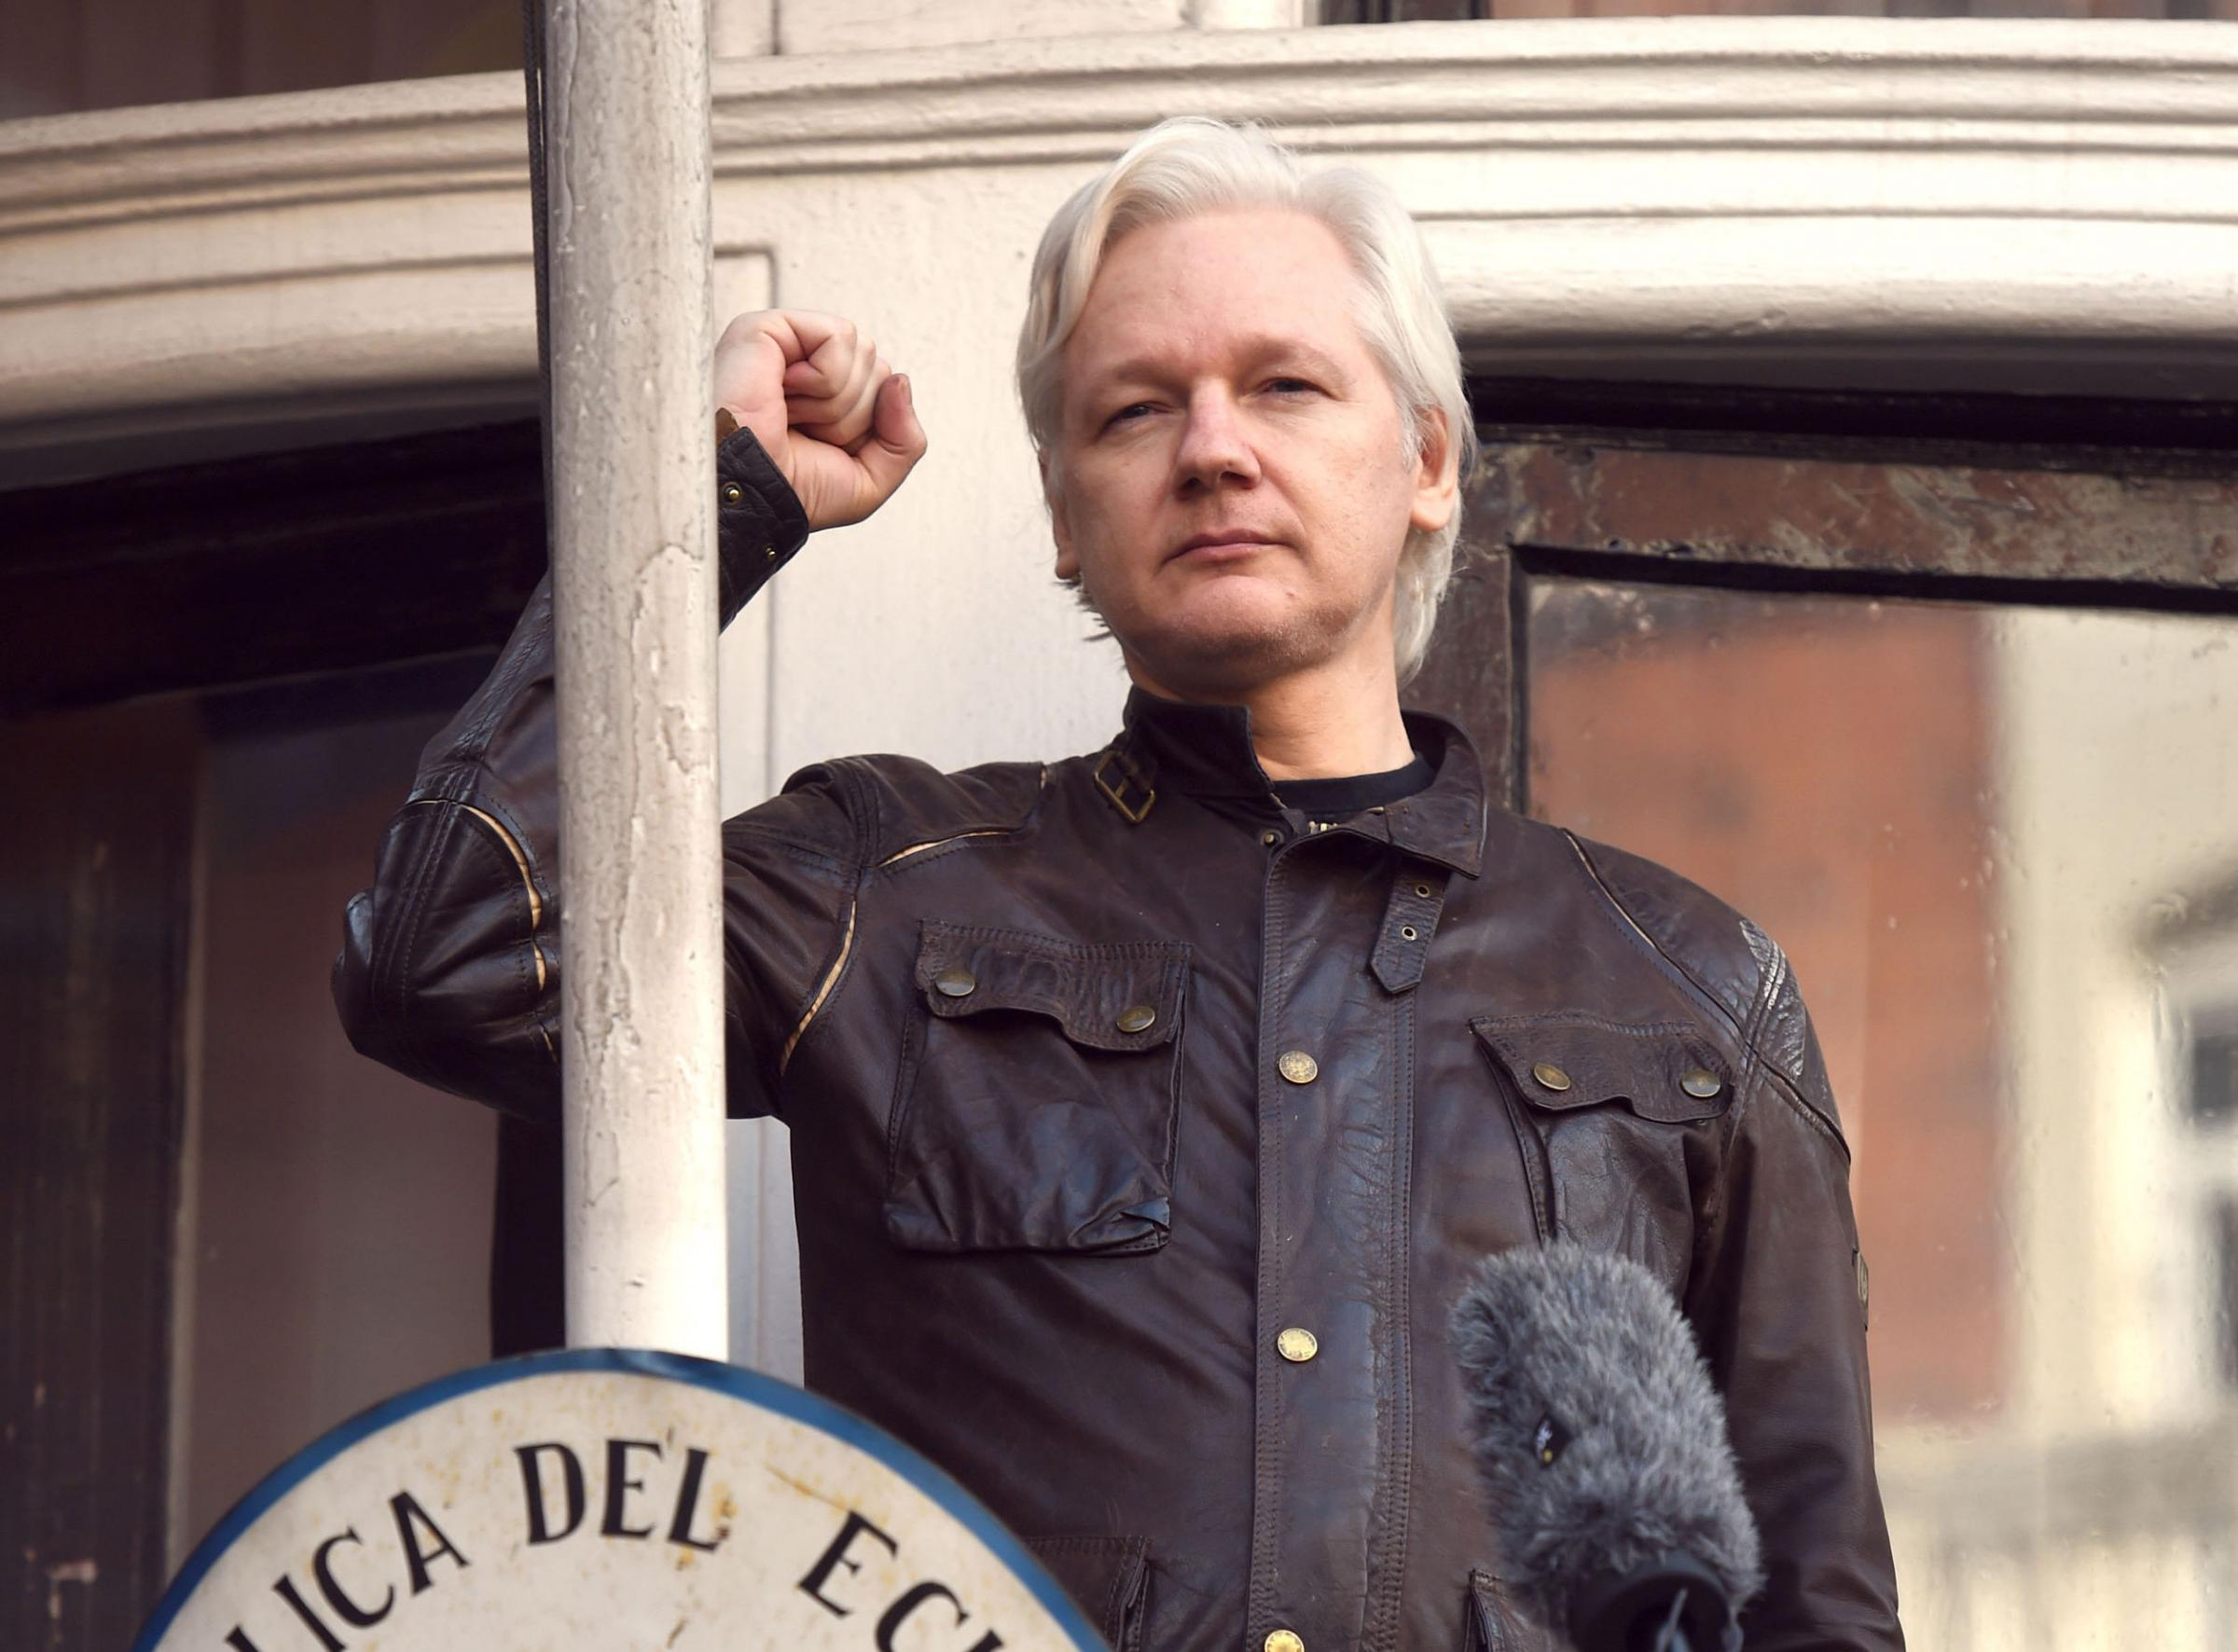 Julian Assange has been living at the Ecuadorian embassy for six years